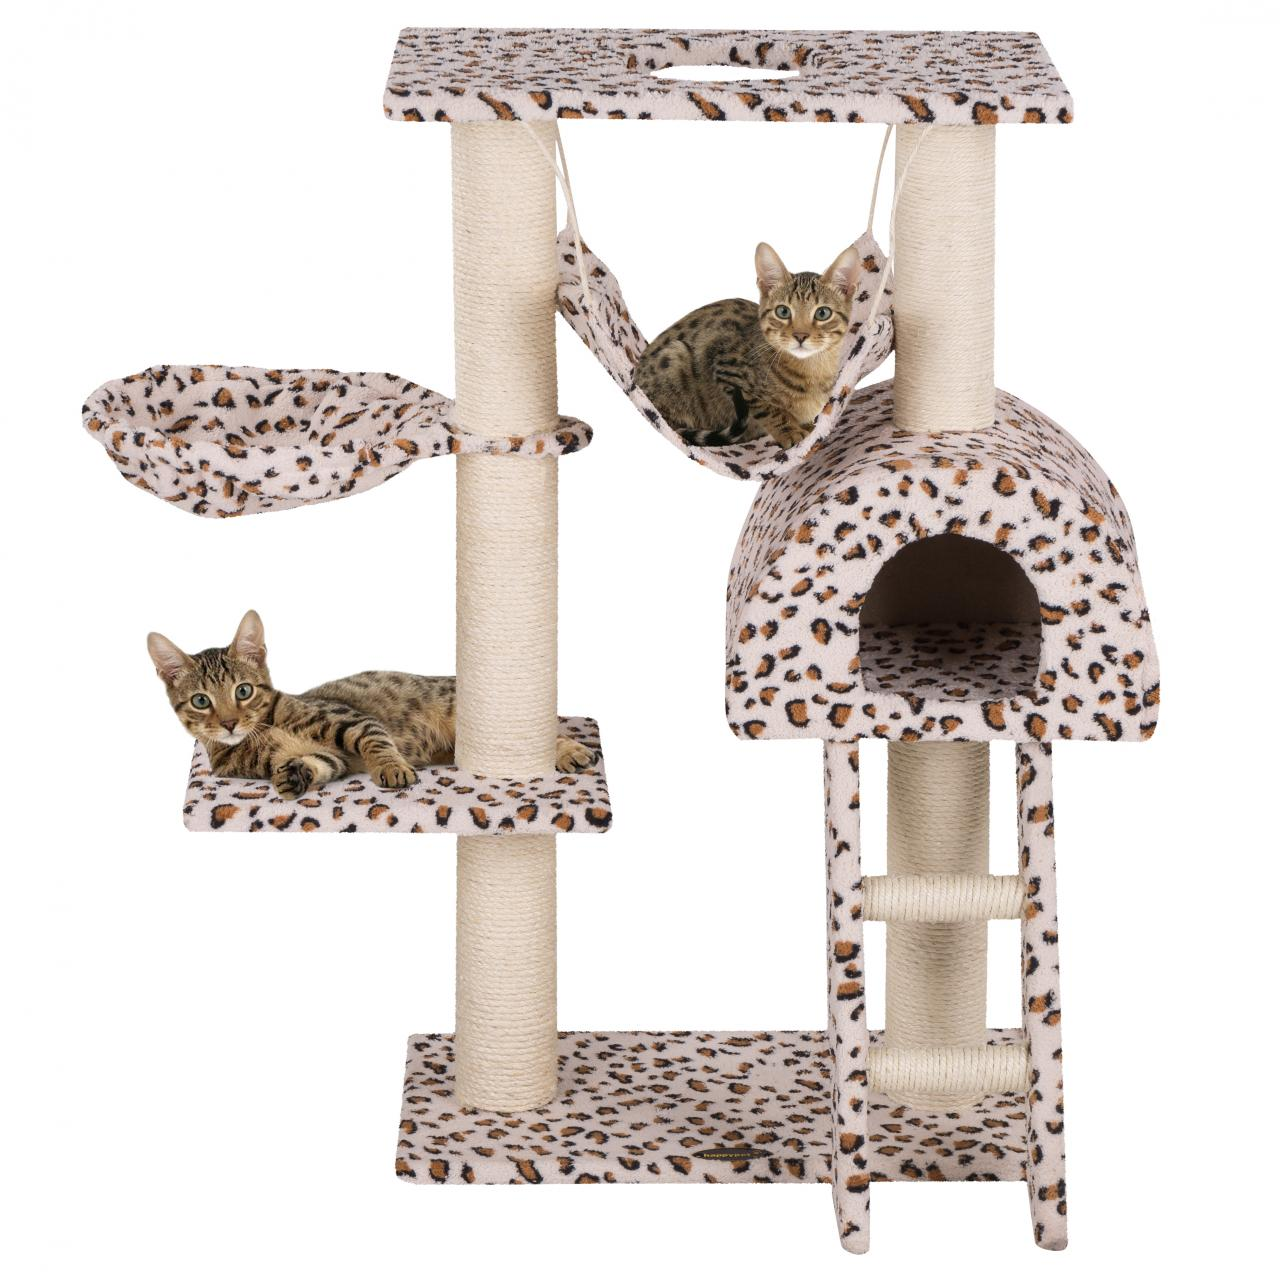 arbre chat griffoir grattoir 100cm diverses couleurs happypet cat018 neuf ebay. Black Bedroom Furniture Sets. Home Design Ideas